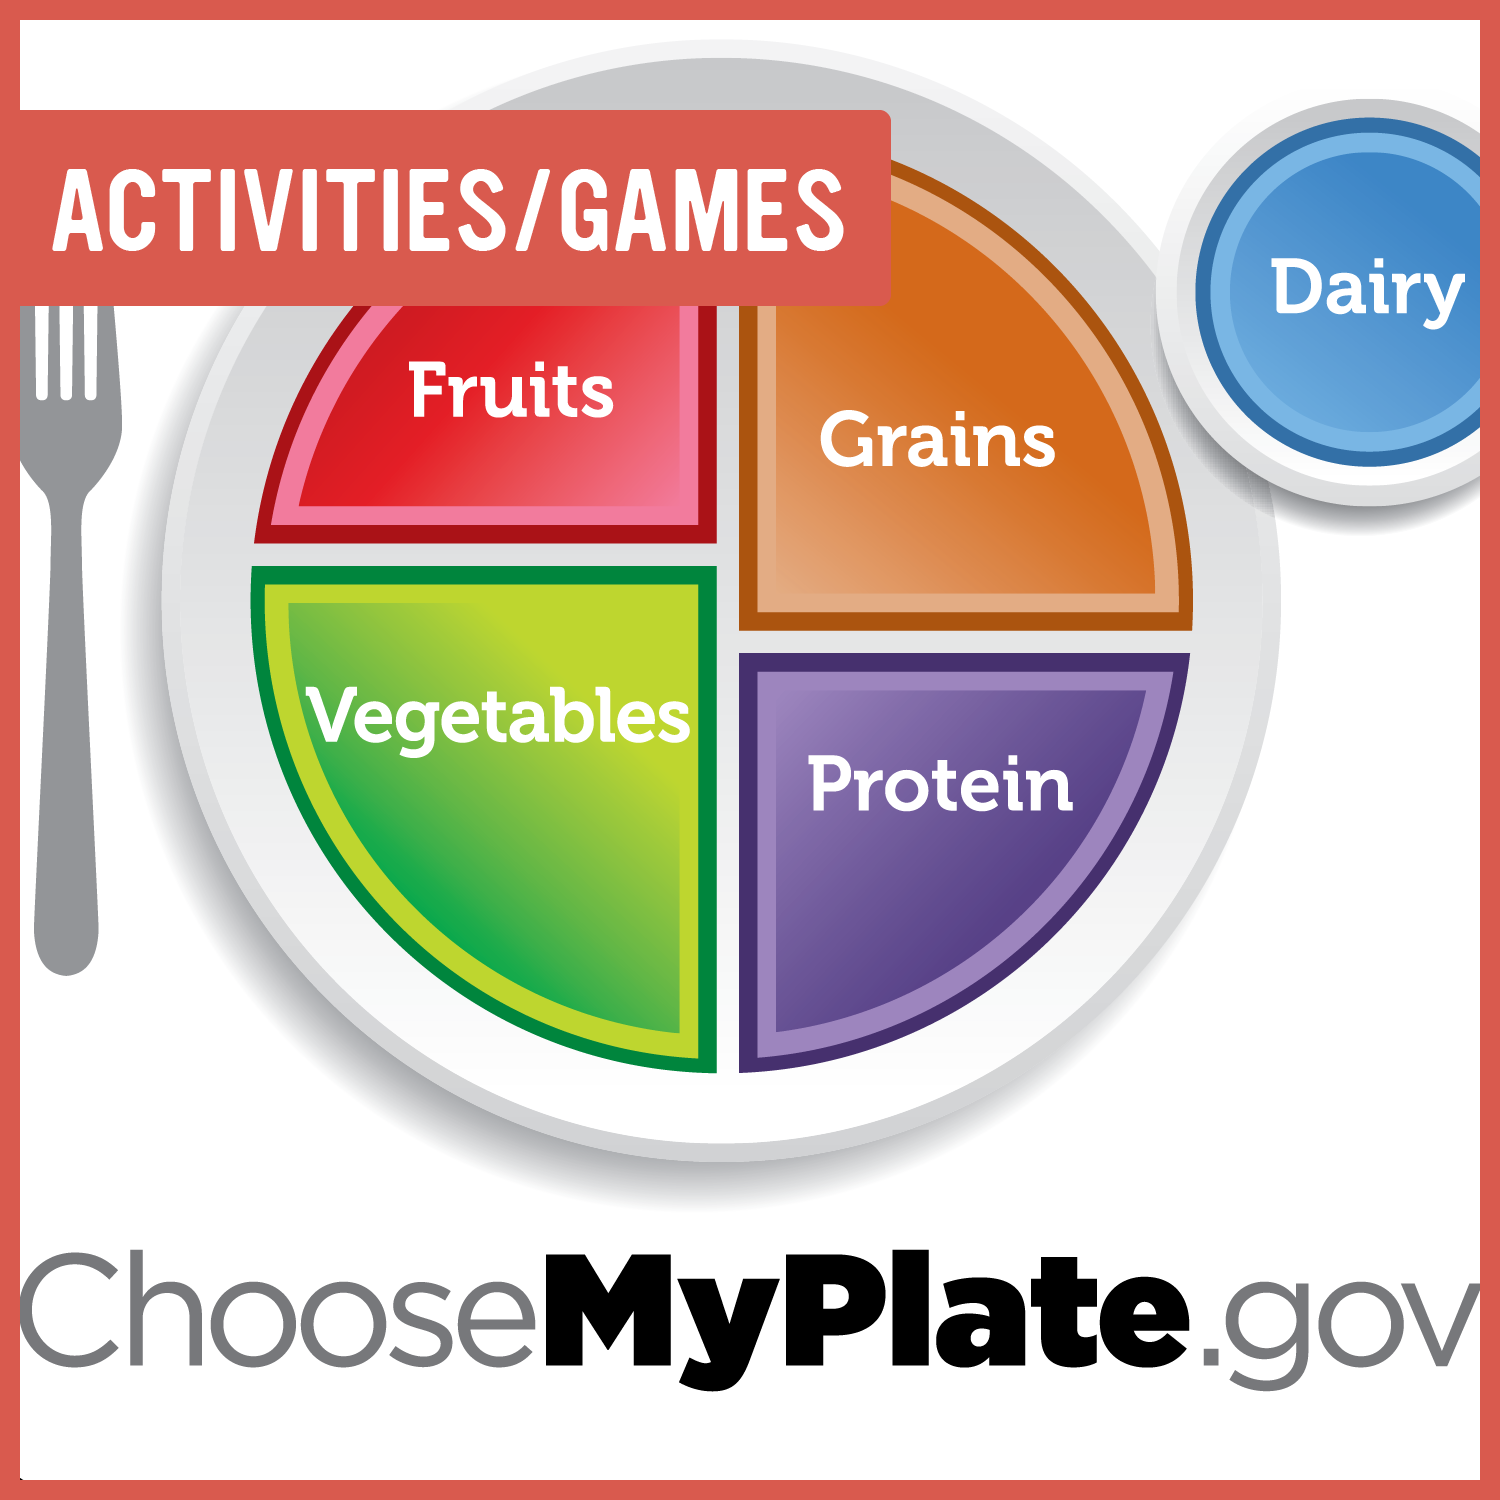 image about Myplate Printable named MyPlate Quizzes Appetite Free of charge Vermont